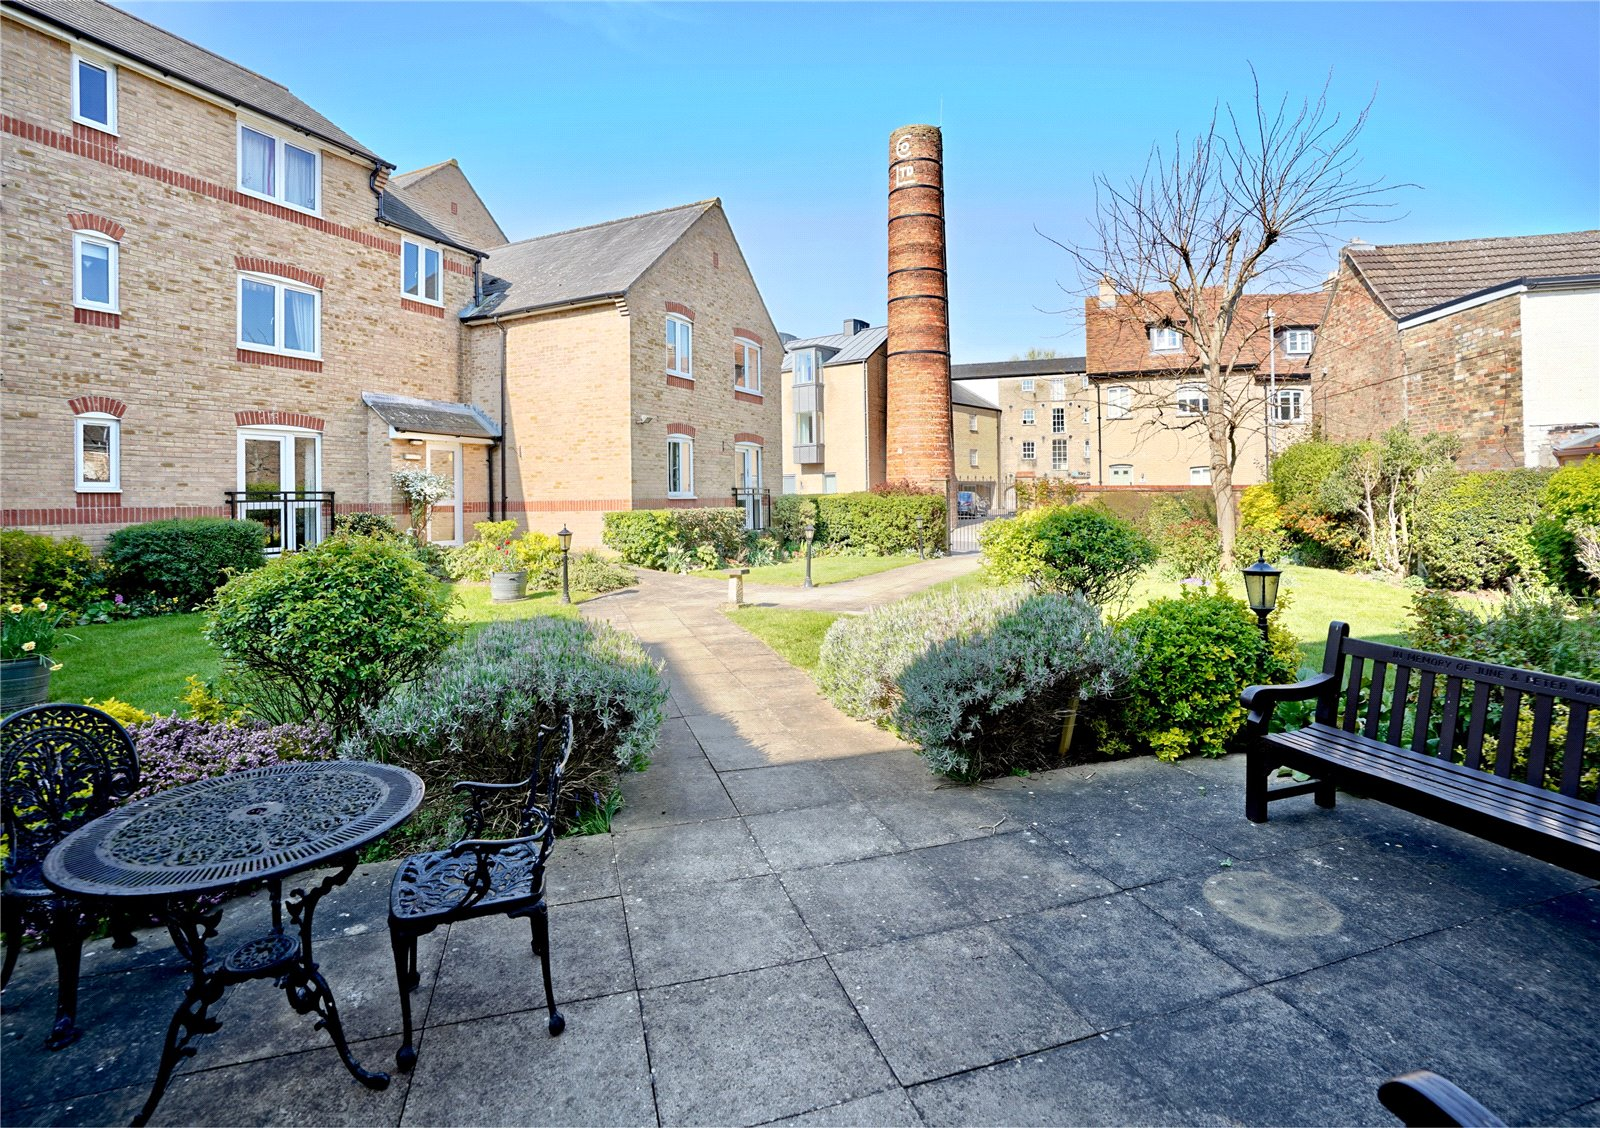 1 bed apartment for sale in Waterside Court, Church Street, St. Neots, PE19